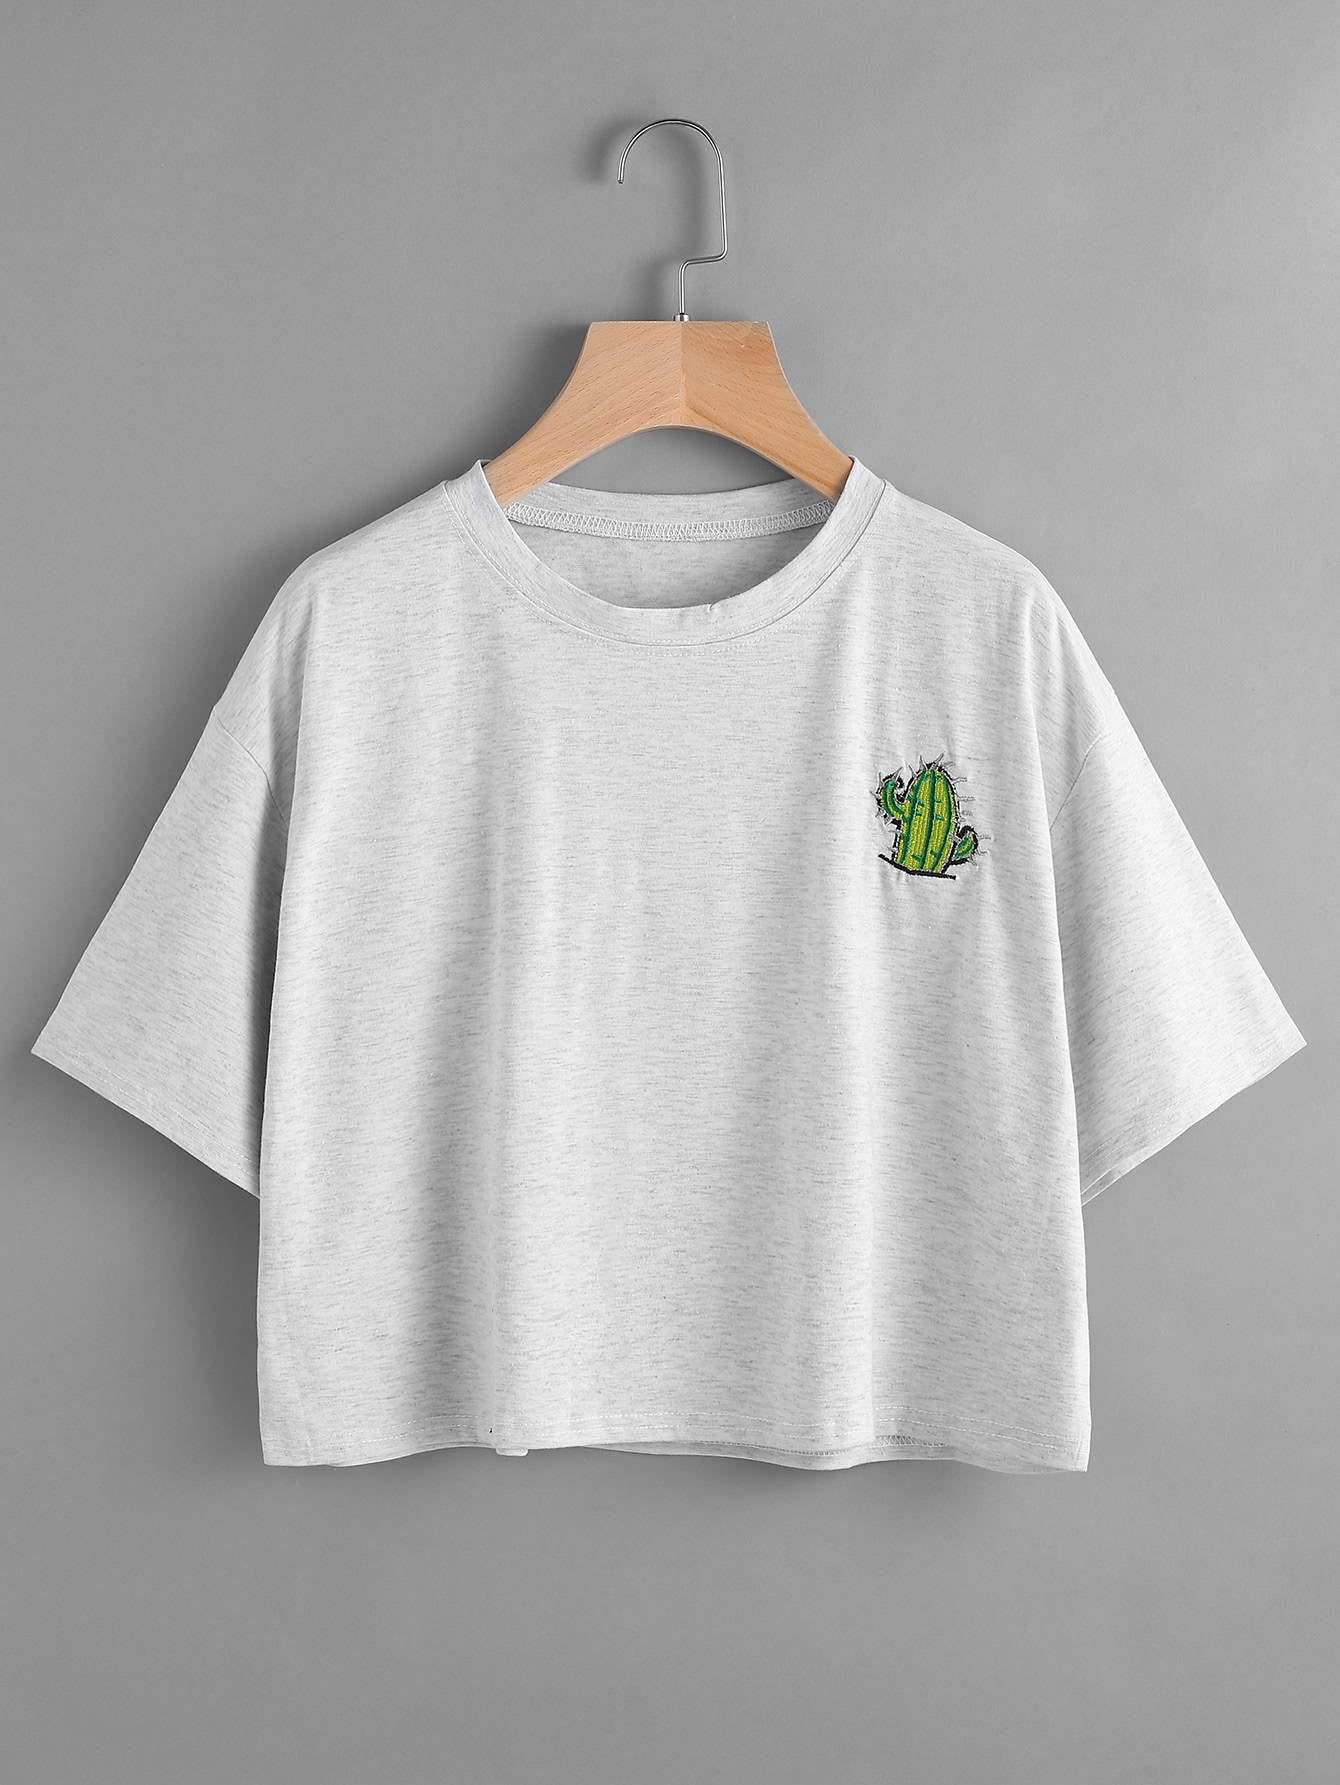 Cactus embroidered drop shoulder teefor women romwe